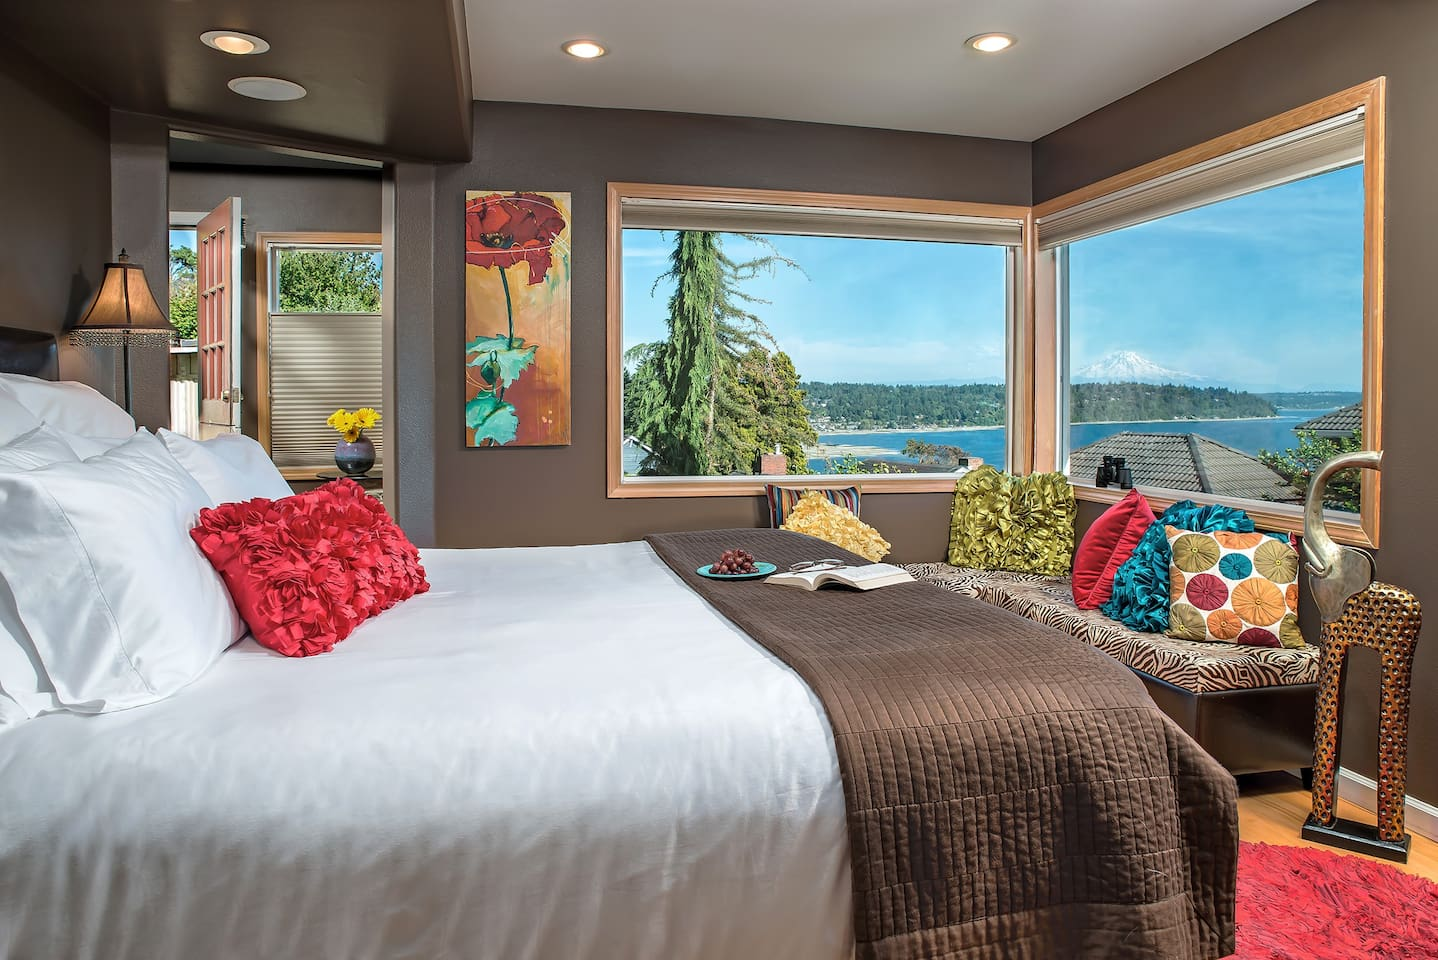 Cottage Bedroom with a view of the Puget Sound and Mount Rainier. Cal. King Bed